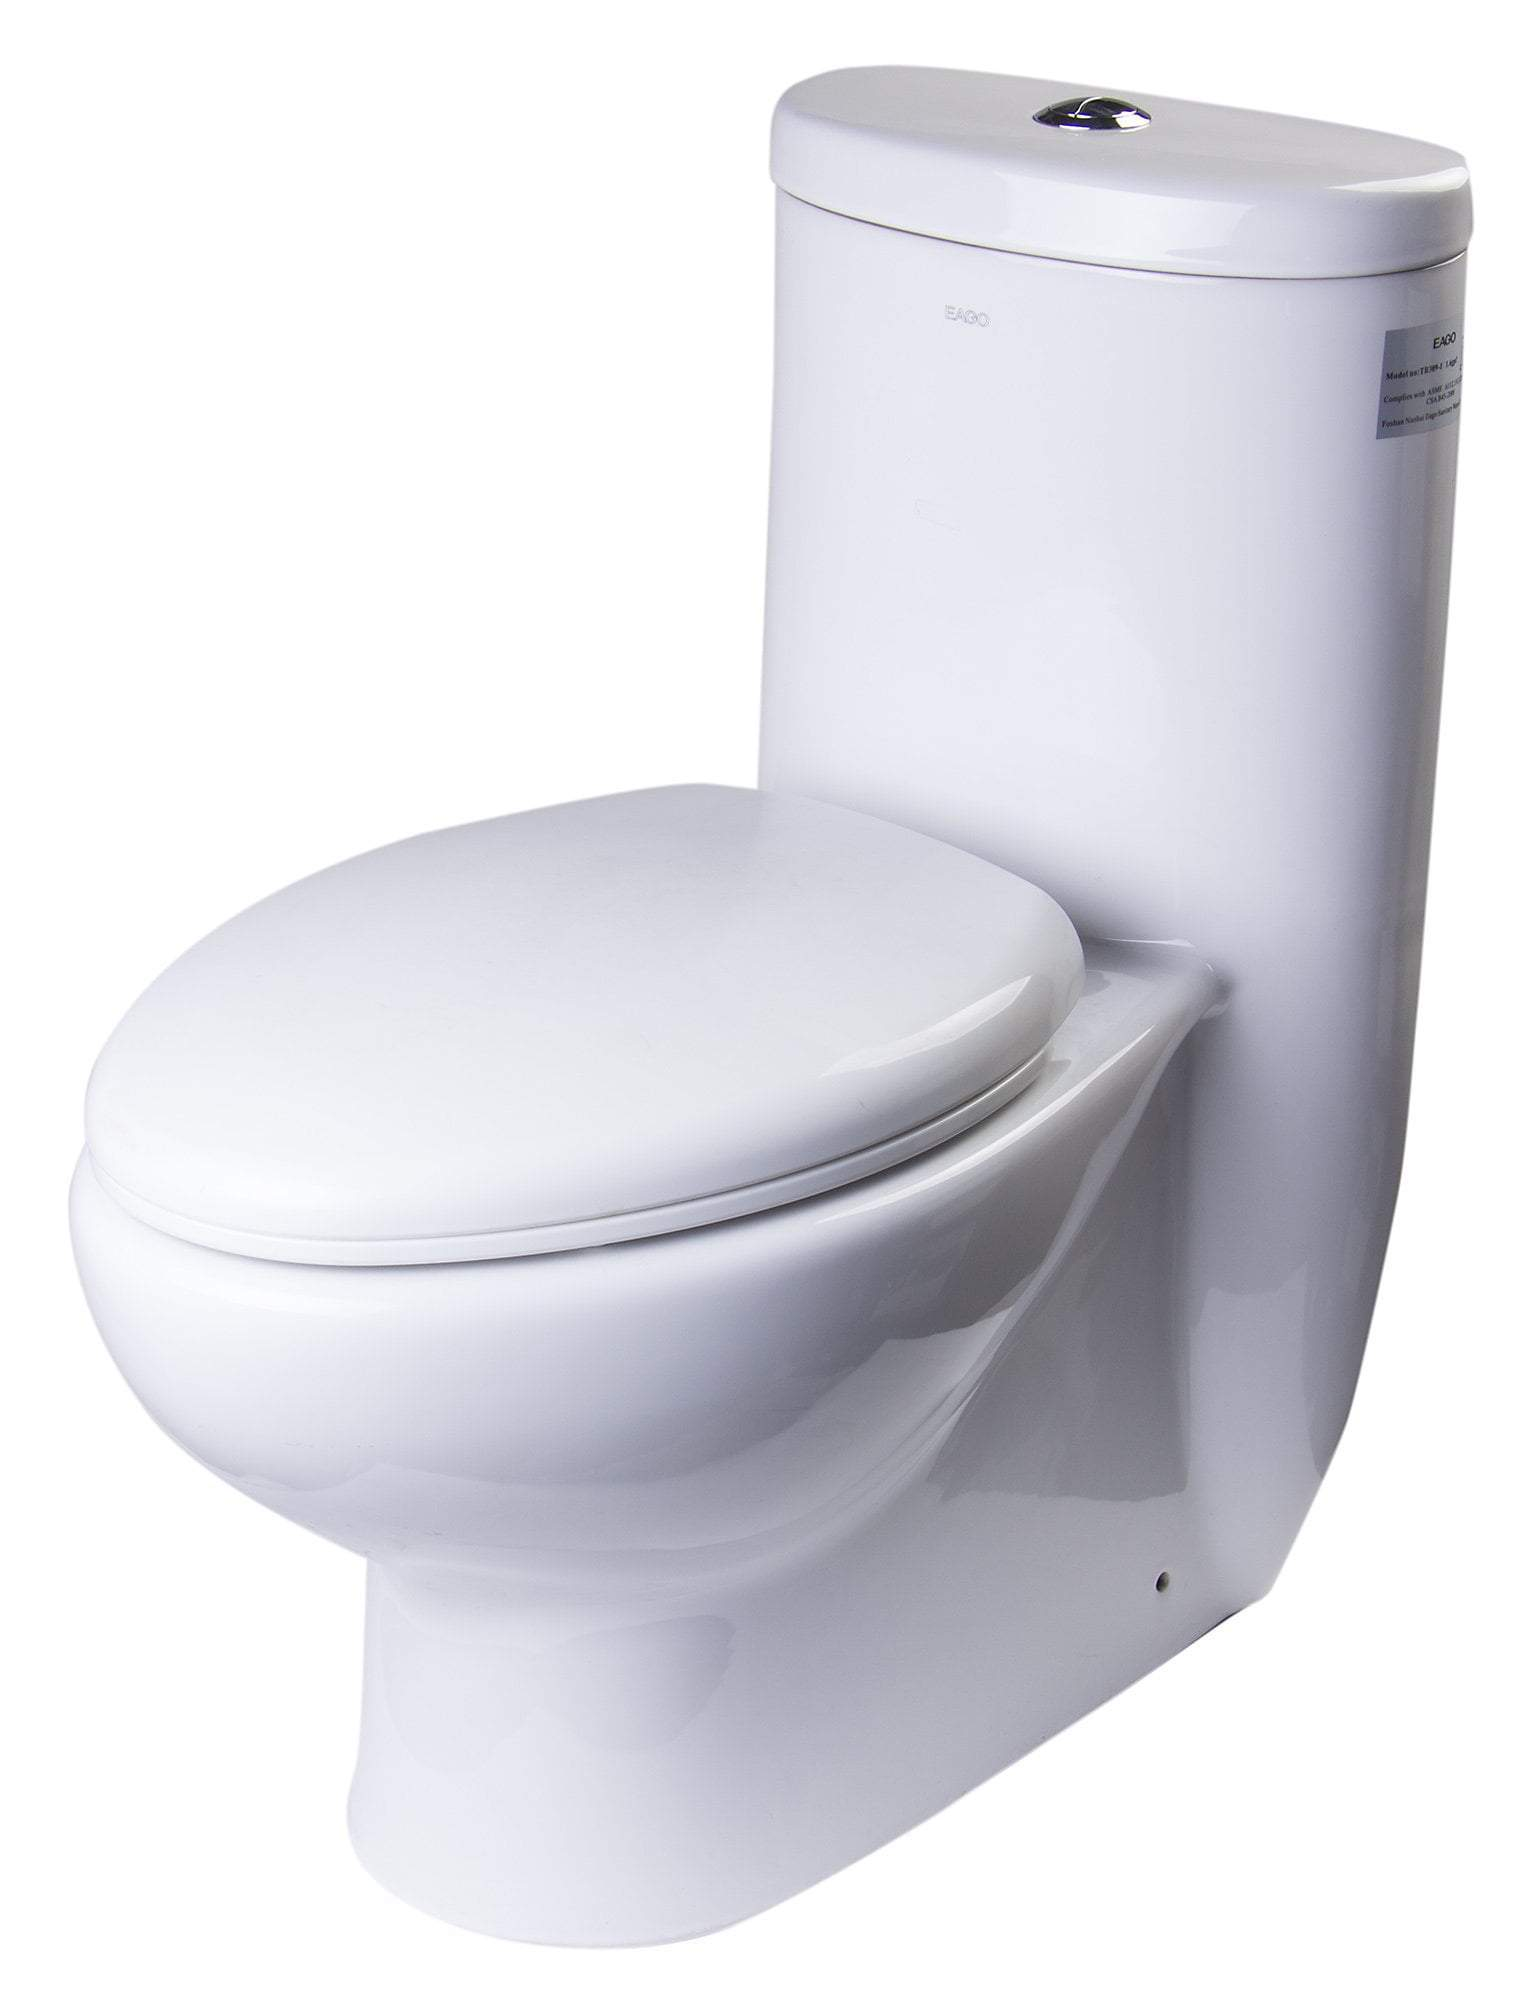 TALL DUAL FLUSH ONE PIECE ECO-FRIENDLY HIGH EFFICIENCY LOW FLUSH CERAMIC TOILET